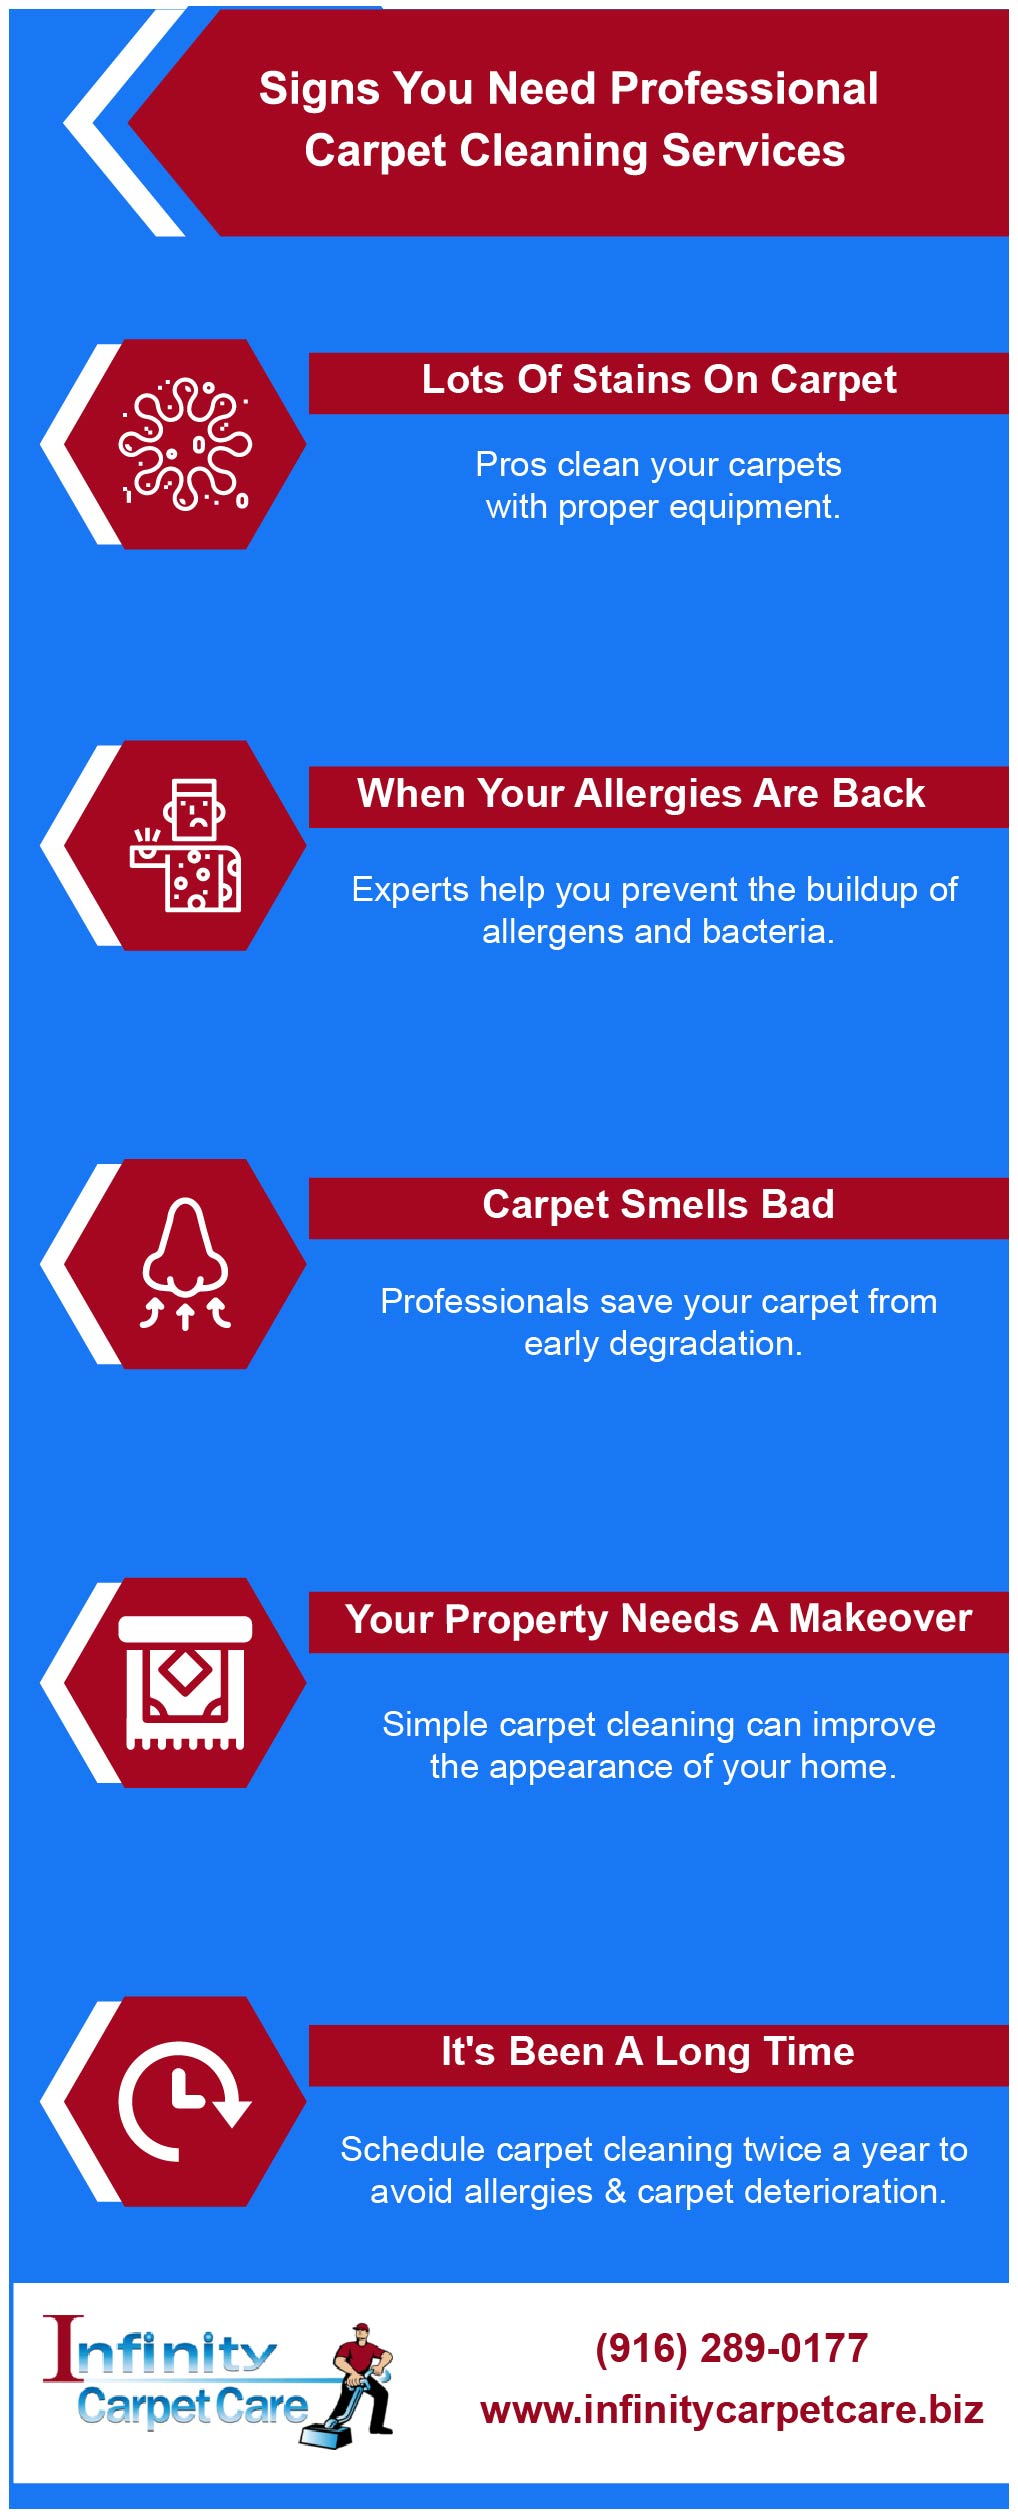 Signs You Need Professional Carpet Cleaning Services [Infographic]